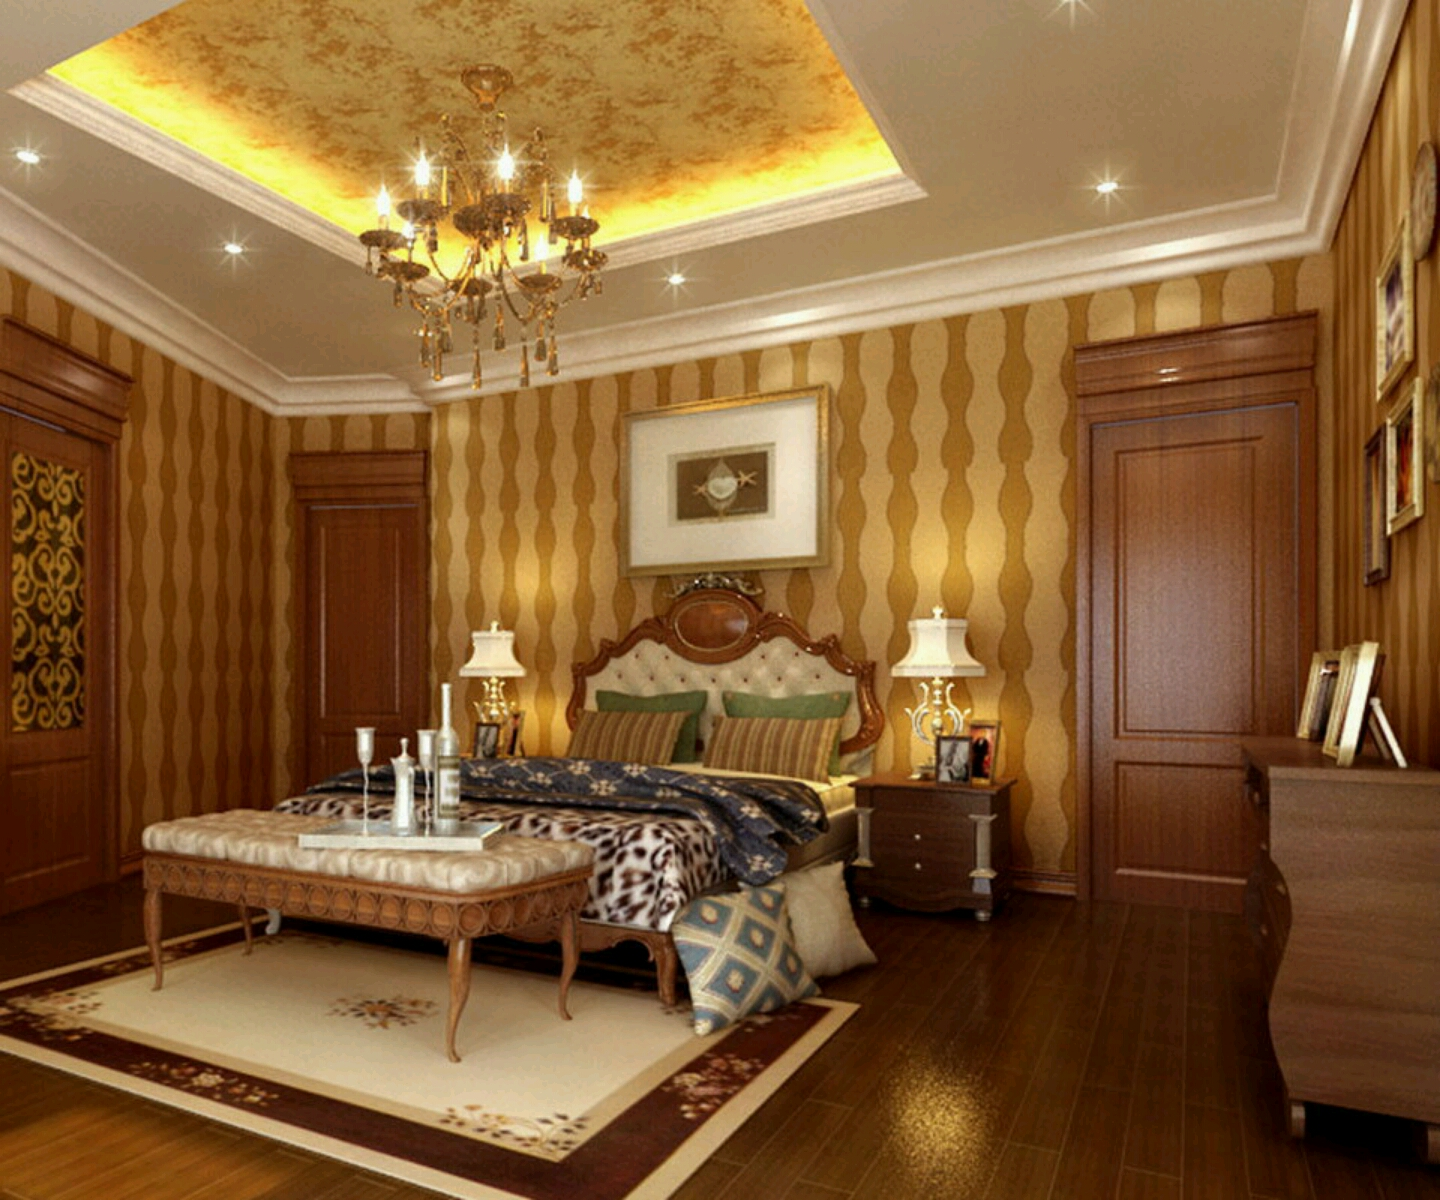 New home designs latest modern bedrooms designs ceiling for Home ceiling design images